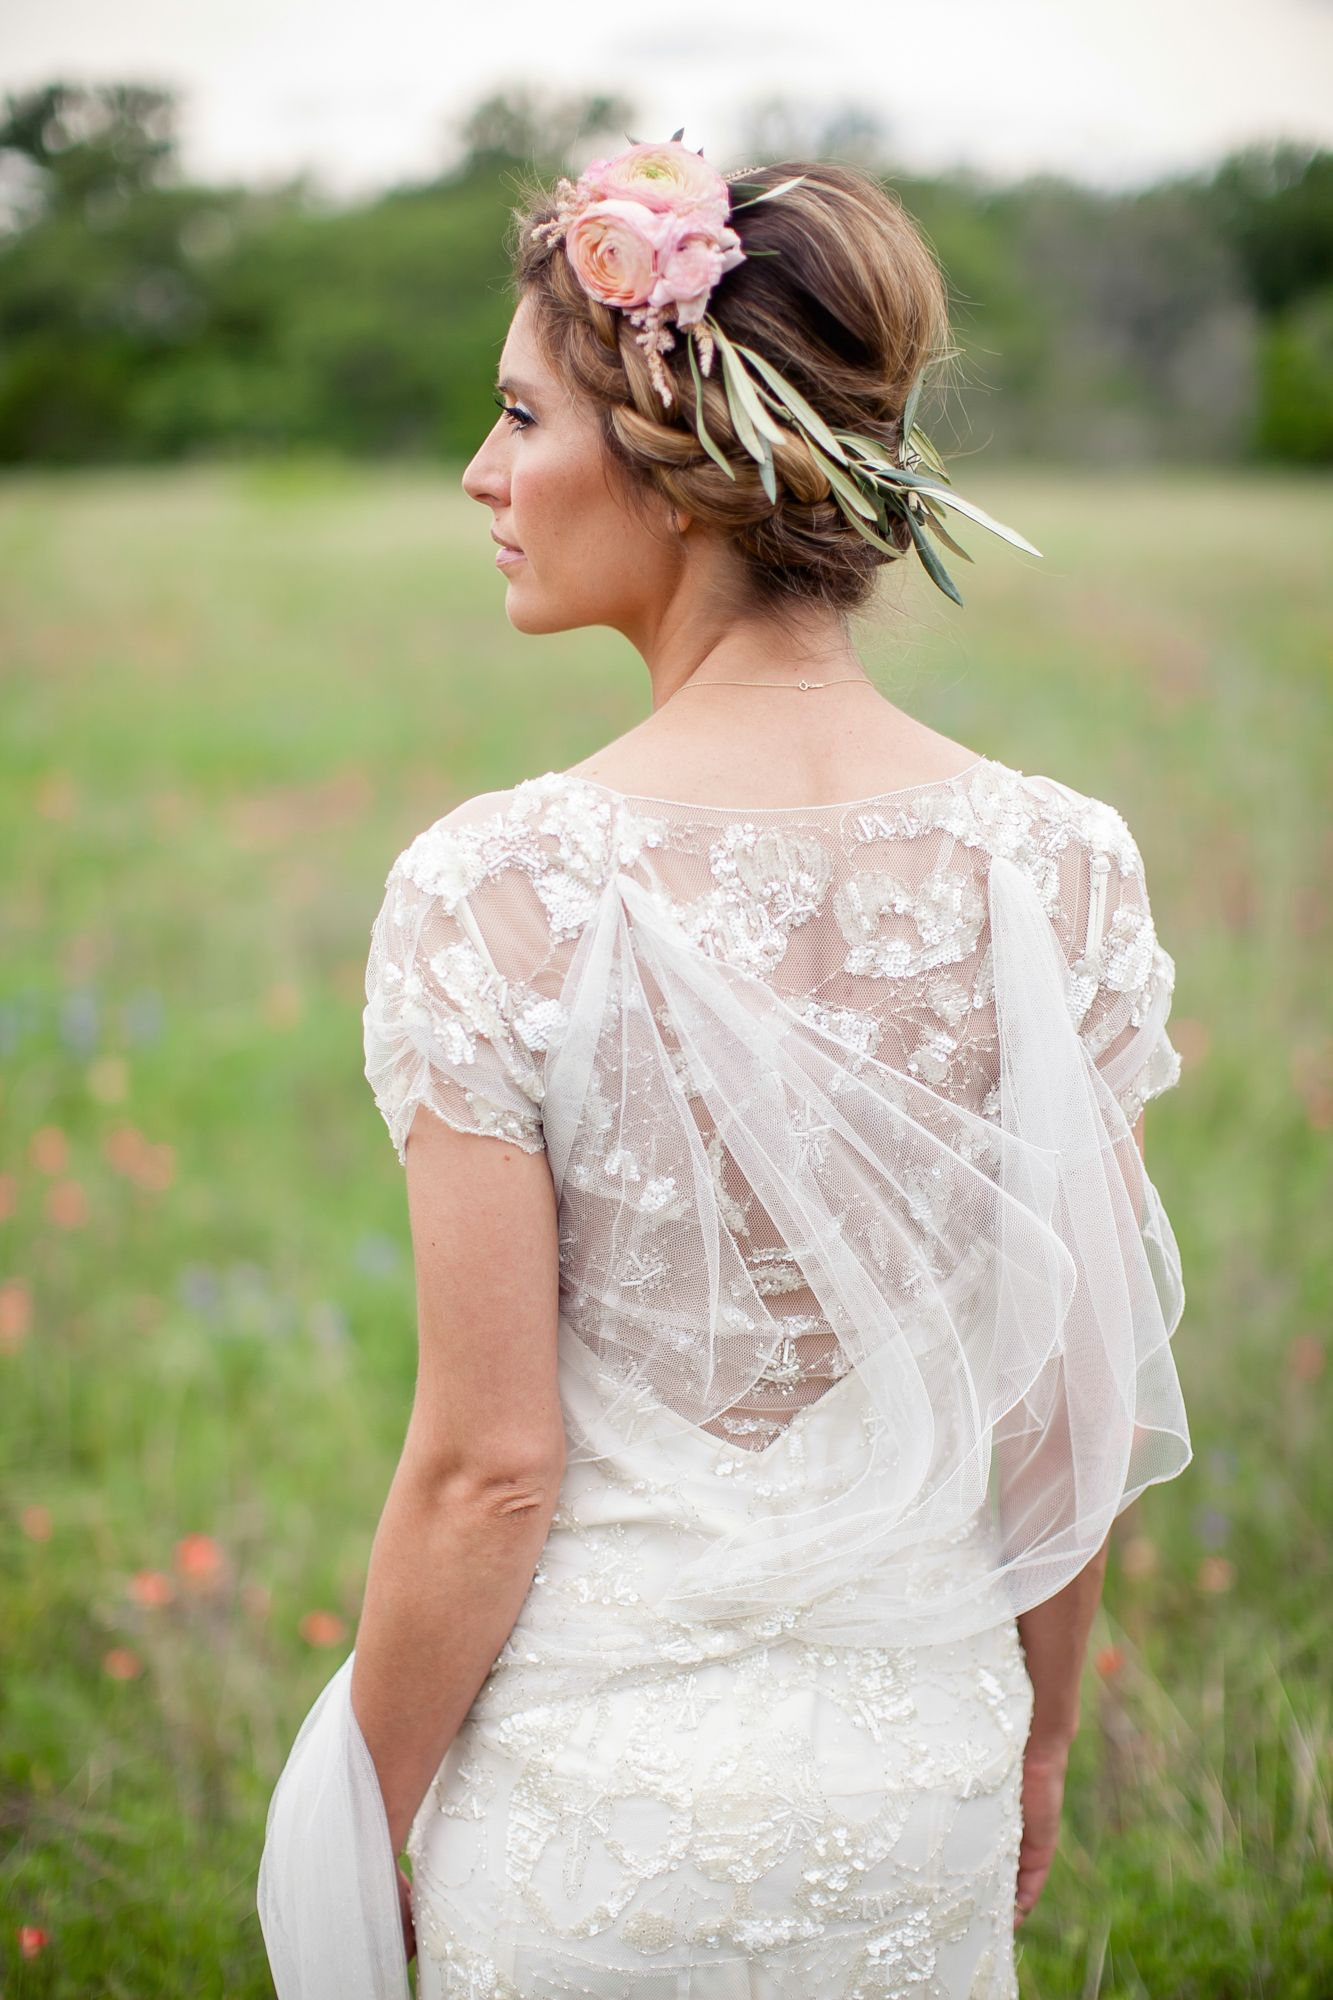 Ethereal flower crown headpiece by Stems Floral Design https://www.theknot.com/marketplace/stems-floral-design-austin-tx-340227 | Winfield Inn – Kyle, Texas https://www.theknot.com/marketplace/the-winfield-inn-kyle-tx-336012 | The Nichols Photography https://www.theknot.com/marketplace/the-nichols-austin-tx-324559